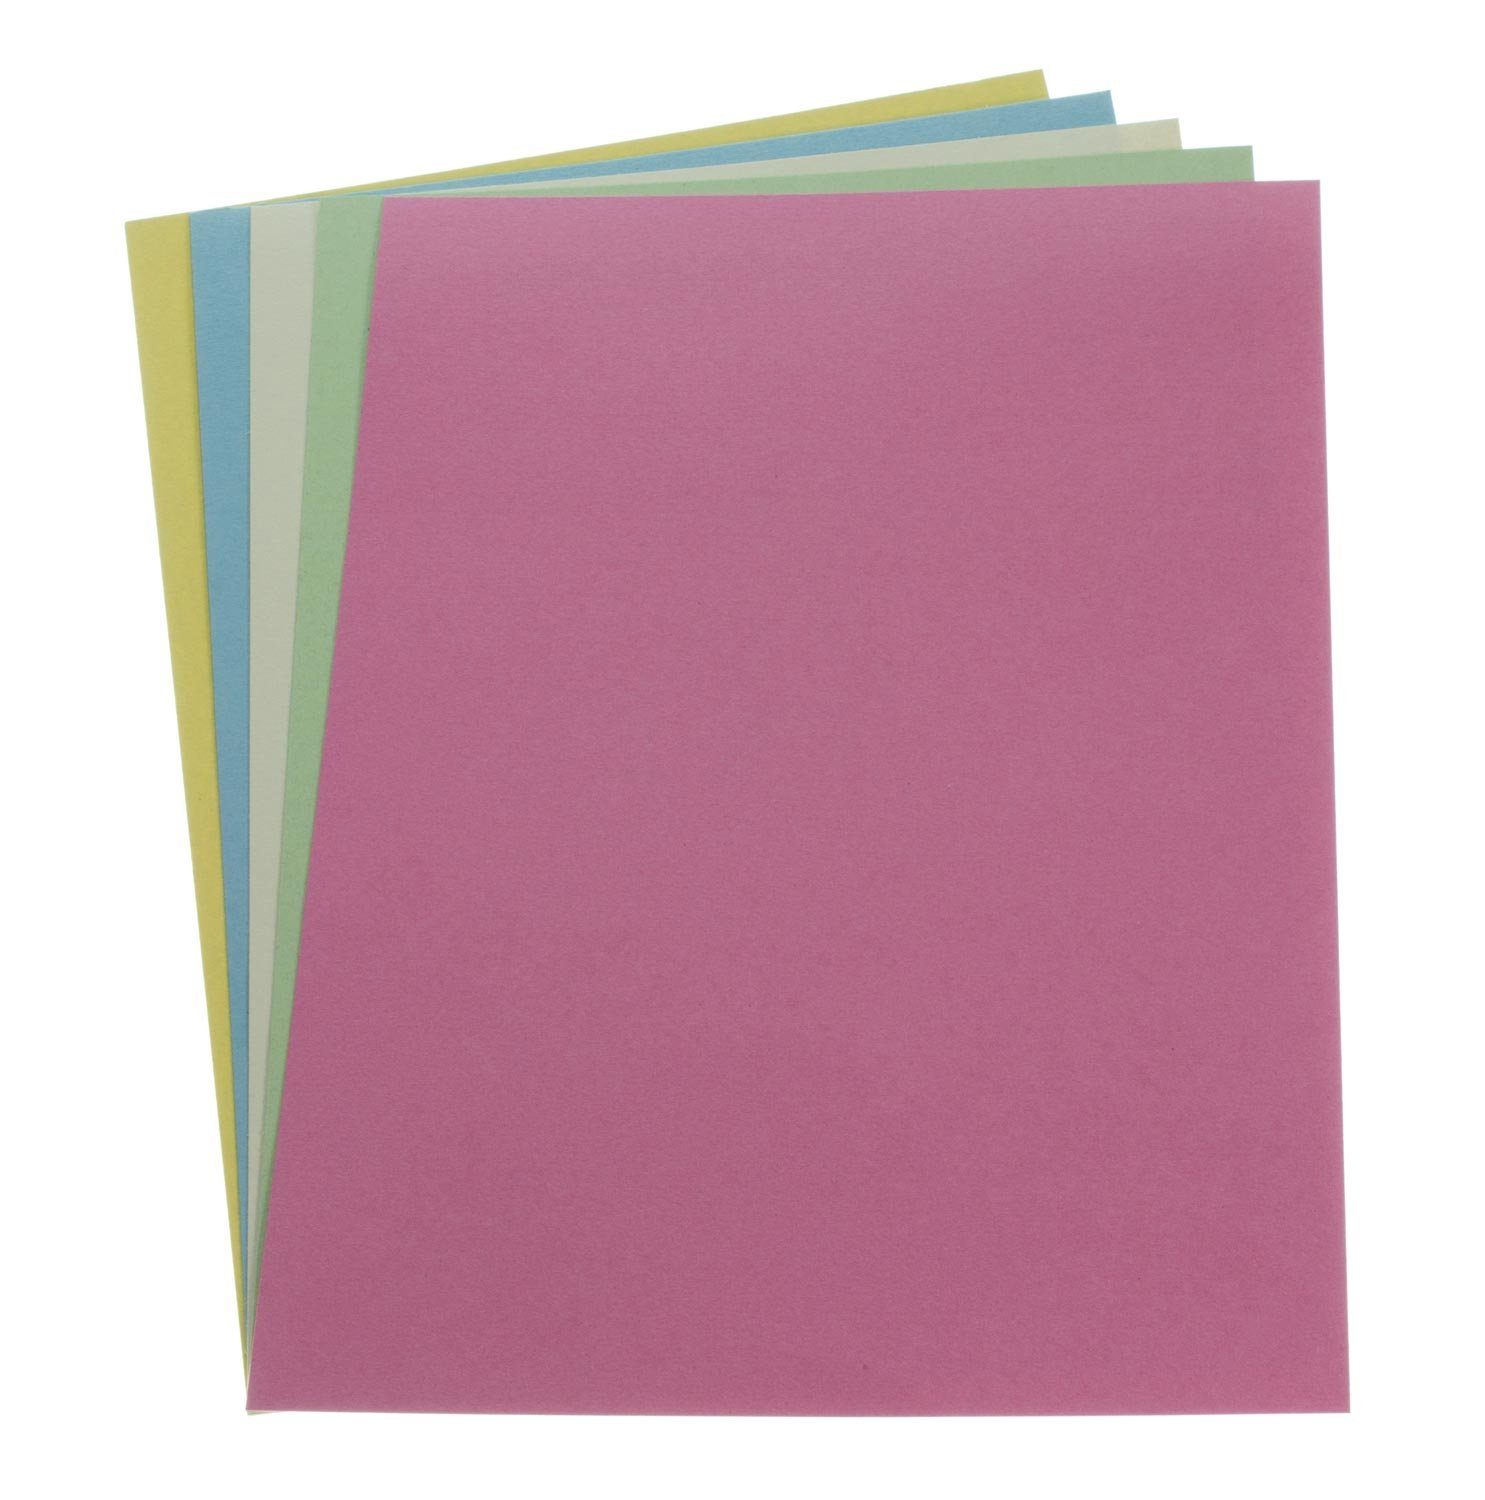 Recycled Card 230mic A4 Assorted Pastel Colours Pk200 Higher Kings Mills Ltd